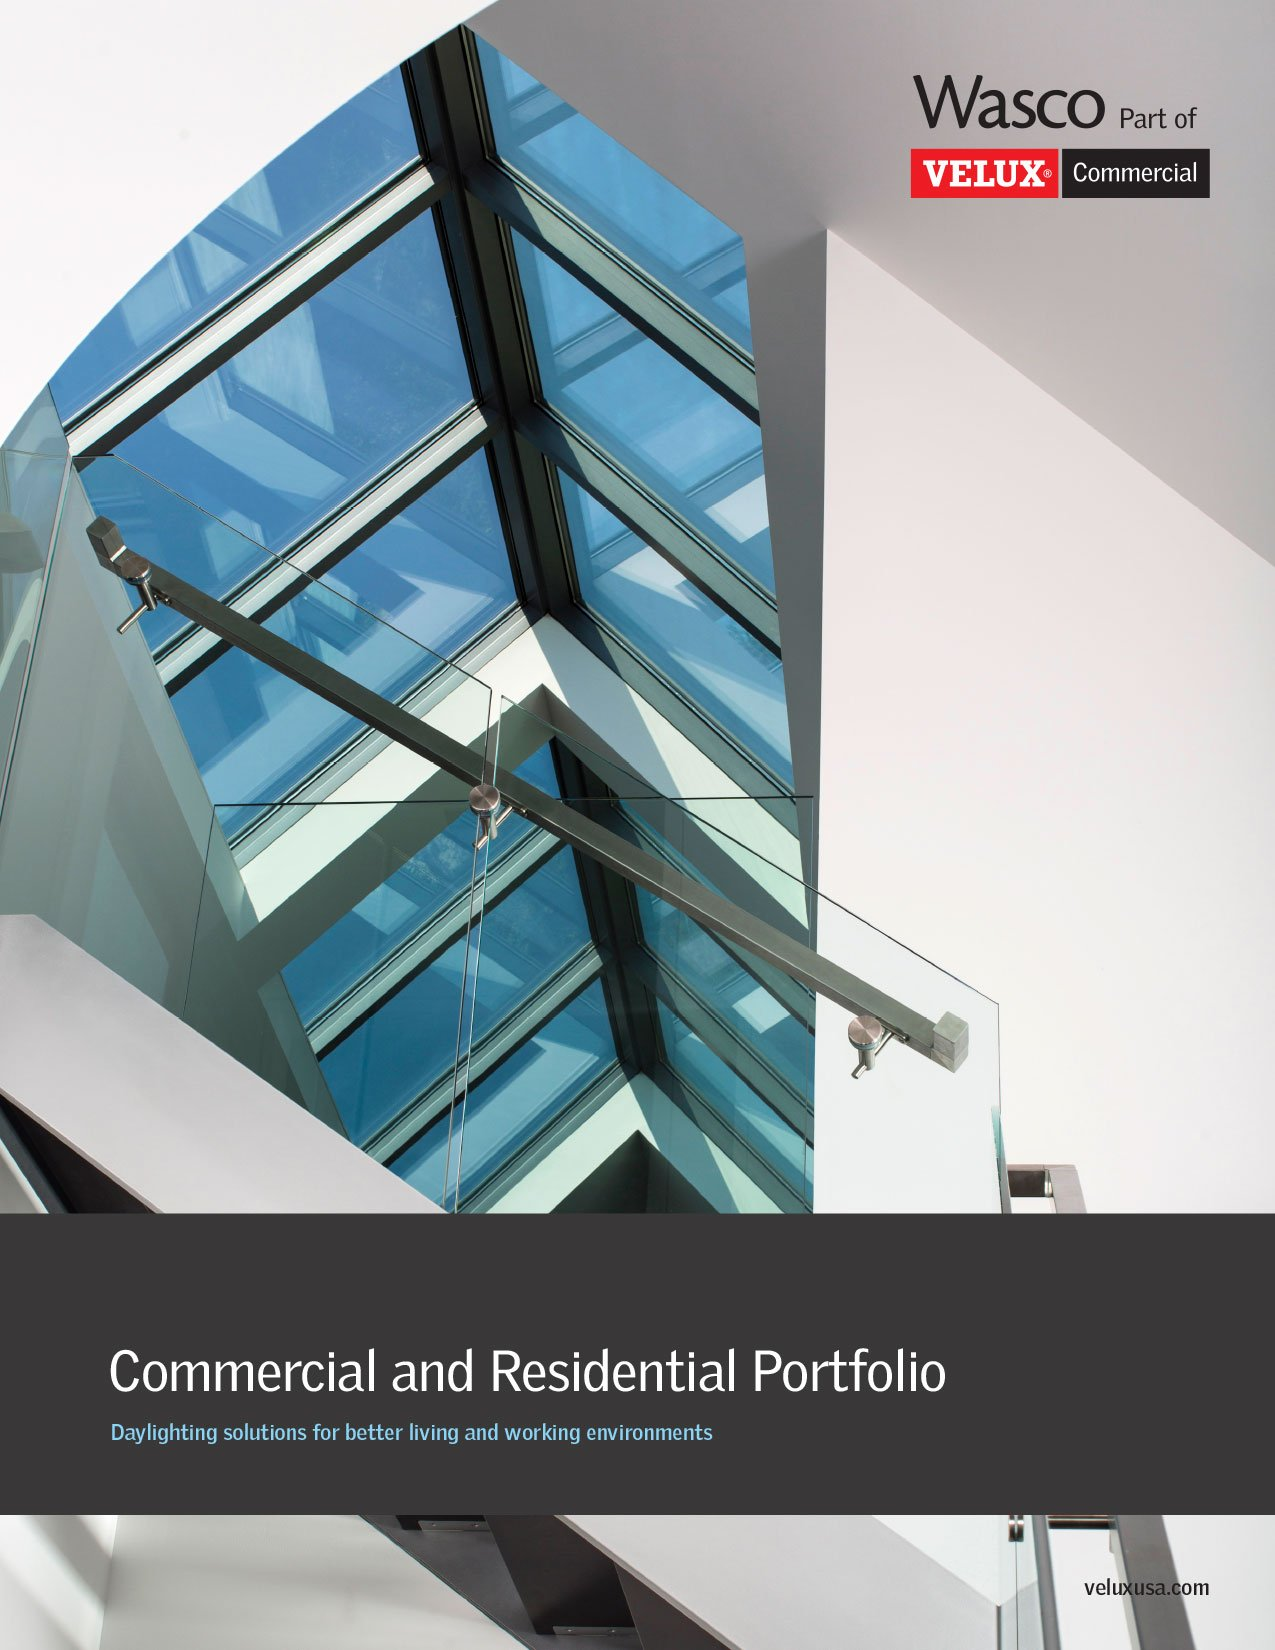 Commercial and Residential Daylighting Solutions - Wasco, now part of VELUX